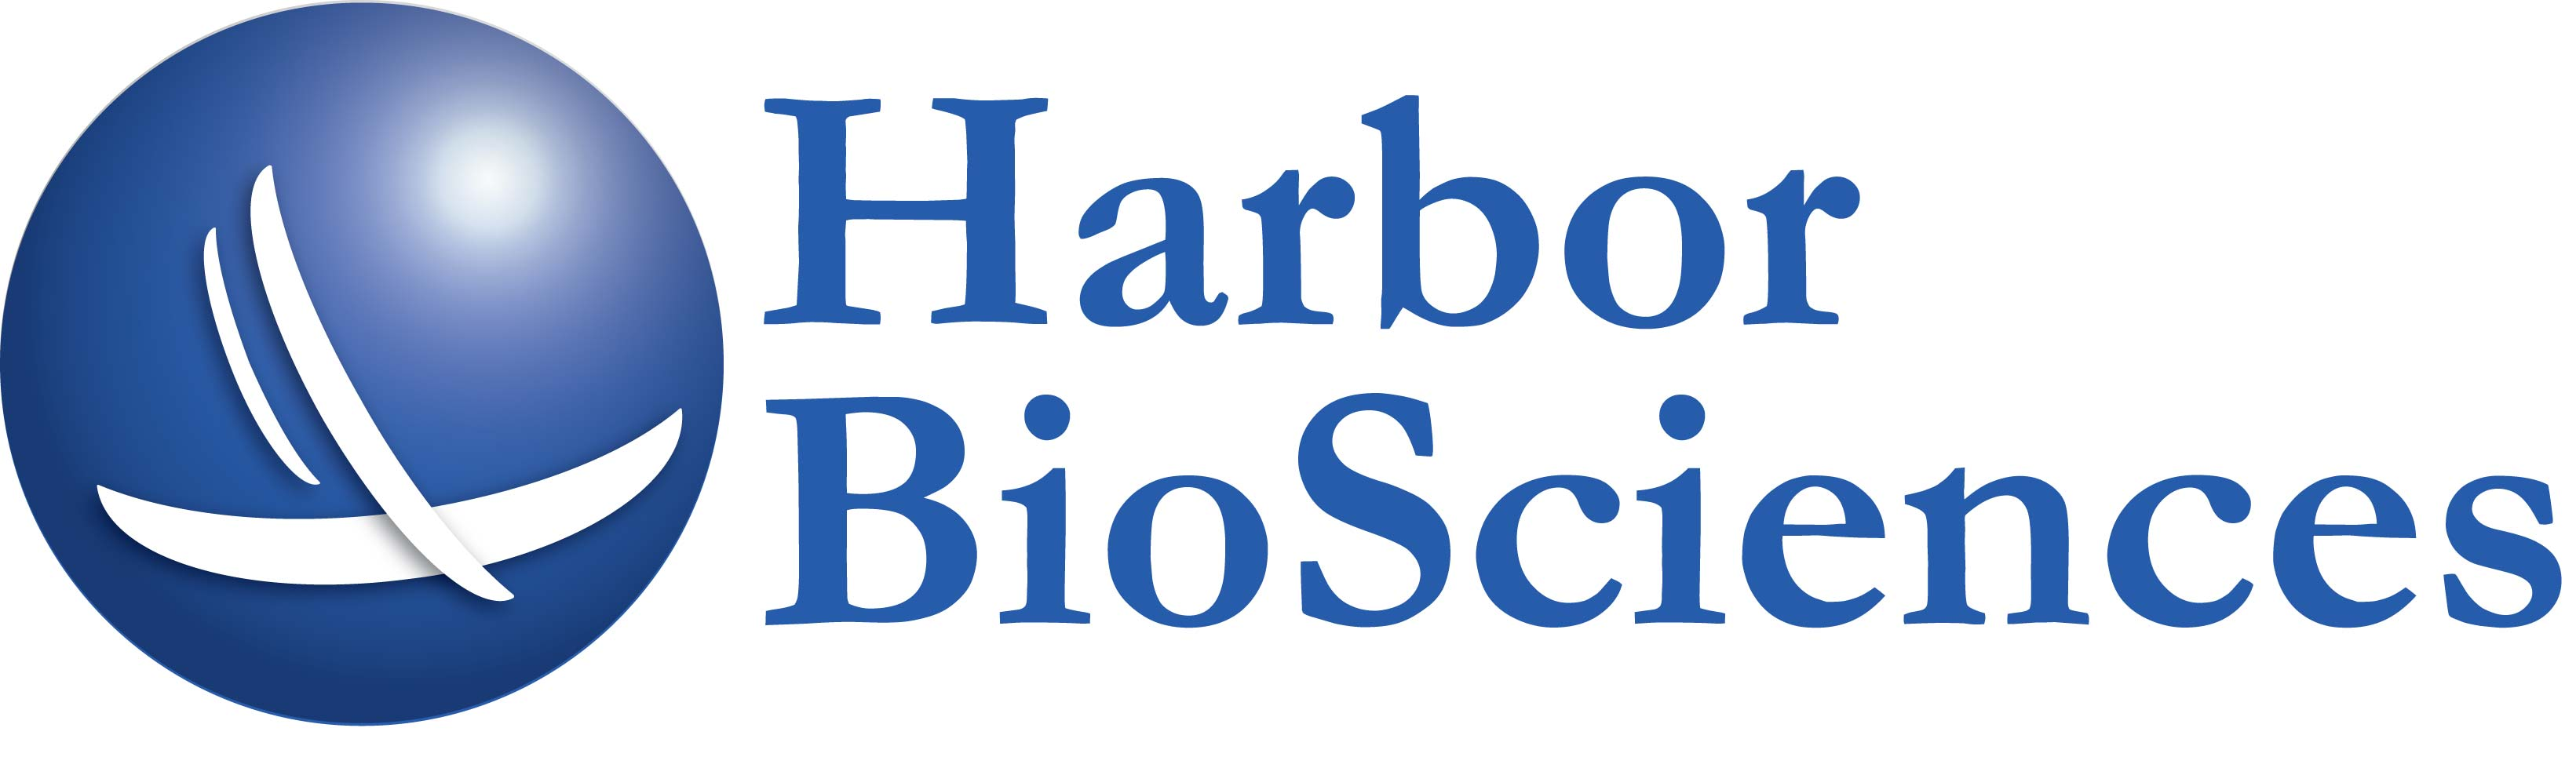 Harbor BioSciences, inc.